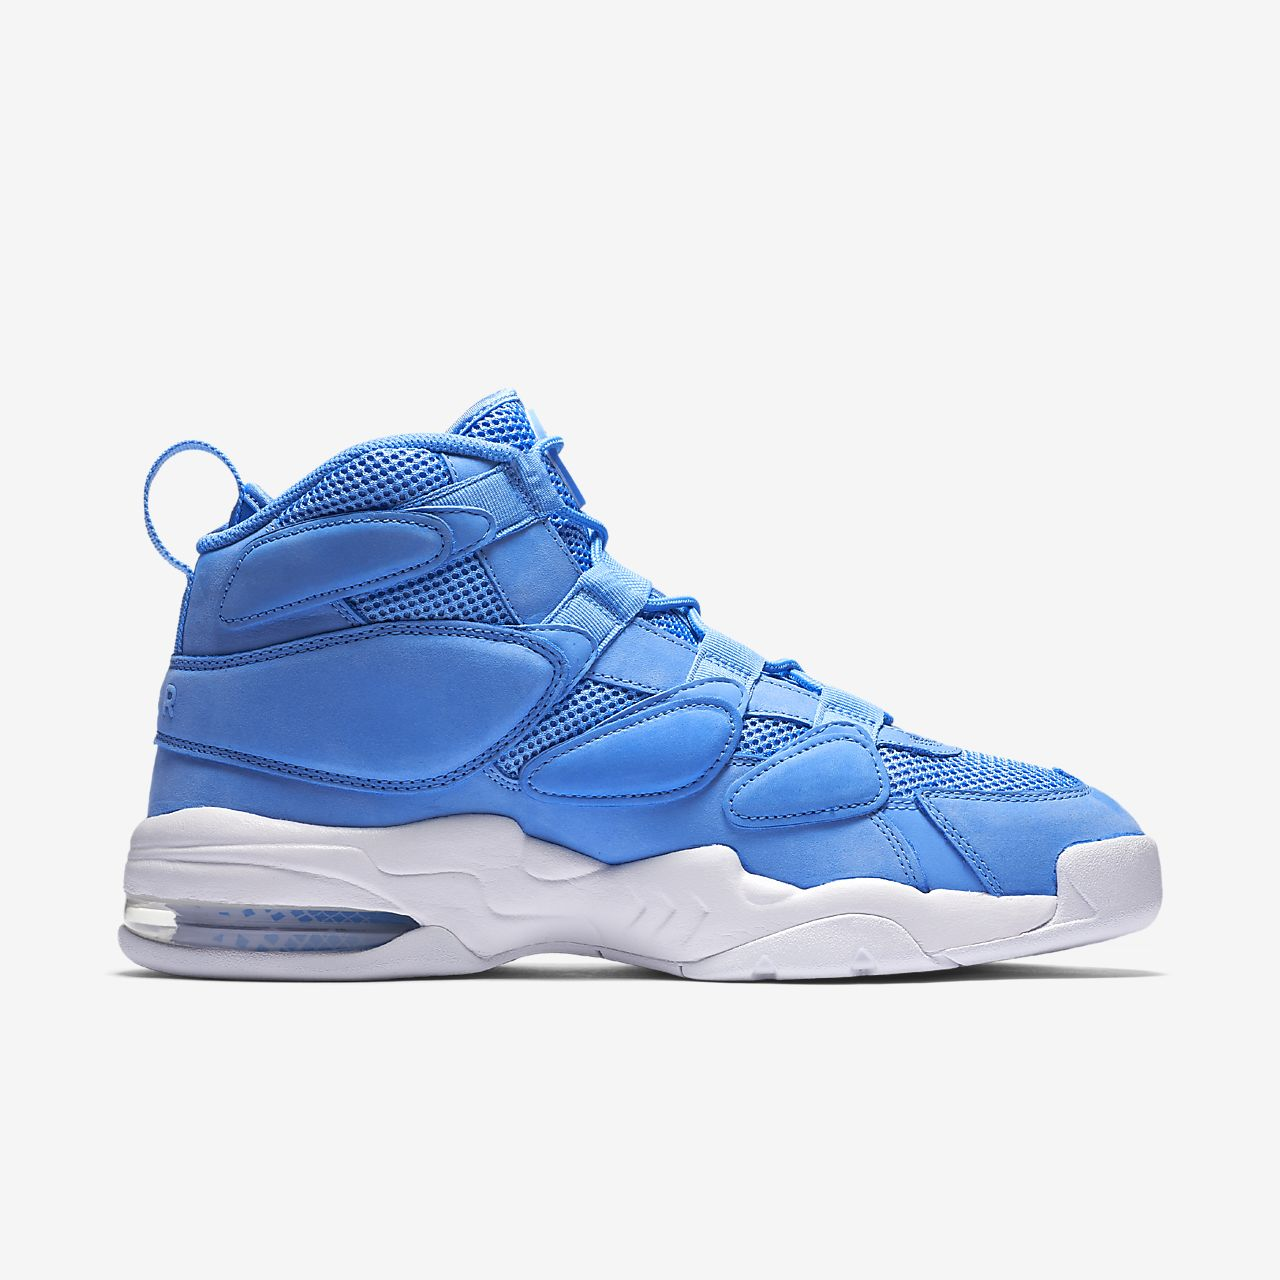 ... Chaussure Nike Air Max Uptempo 94 pour Homme